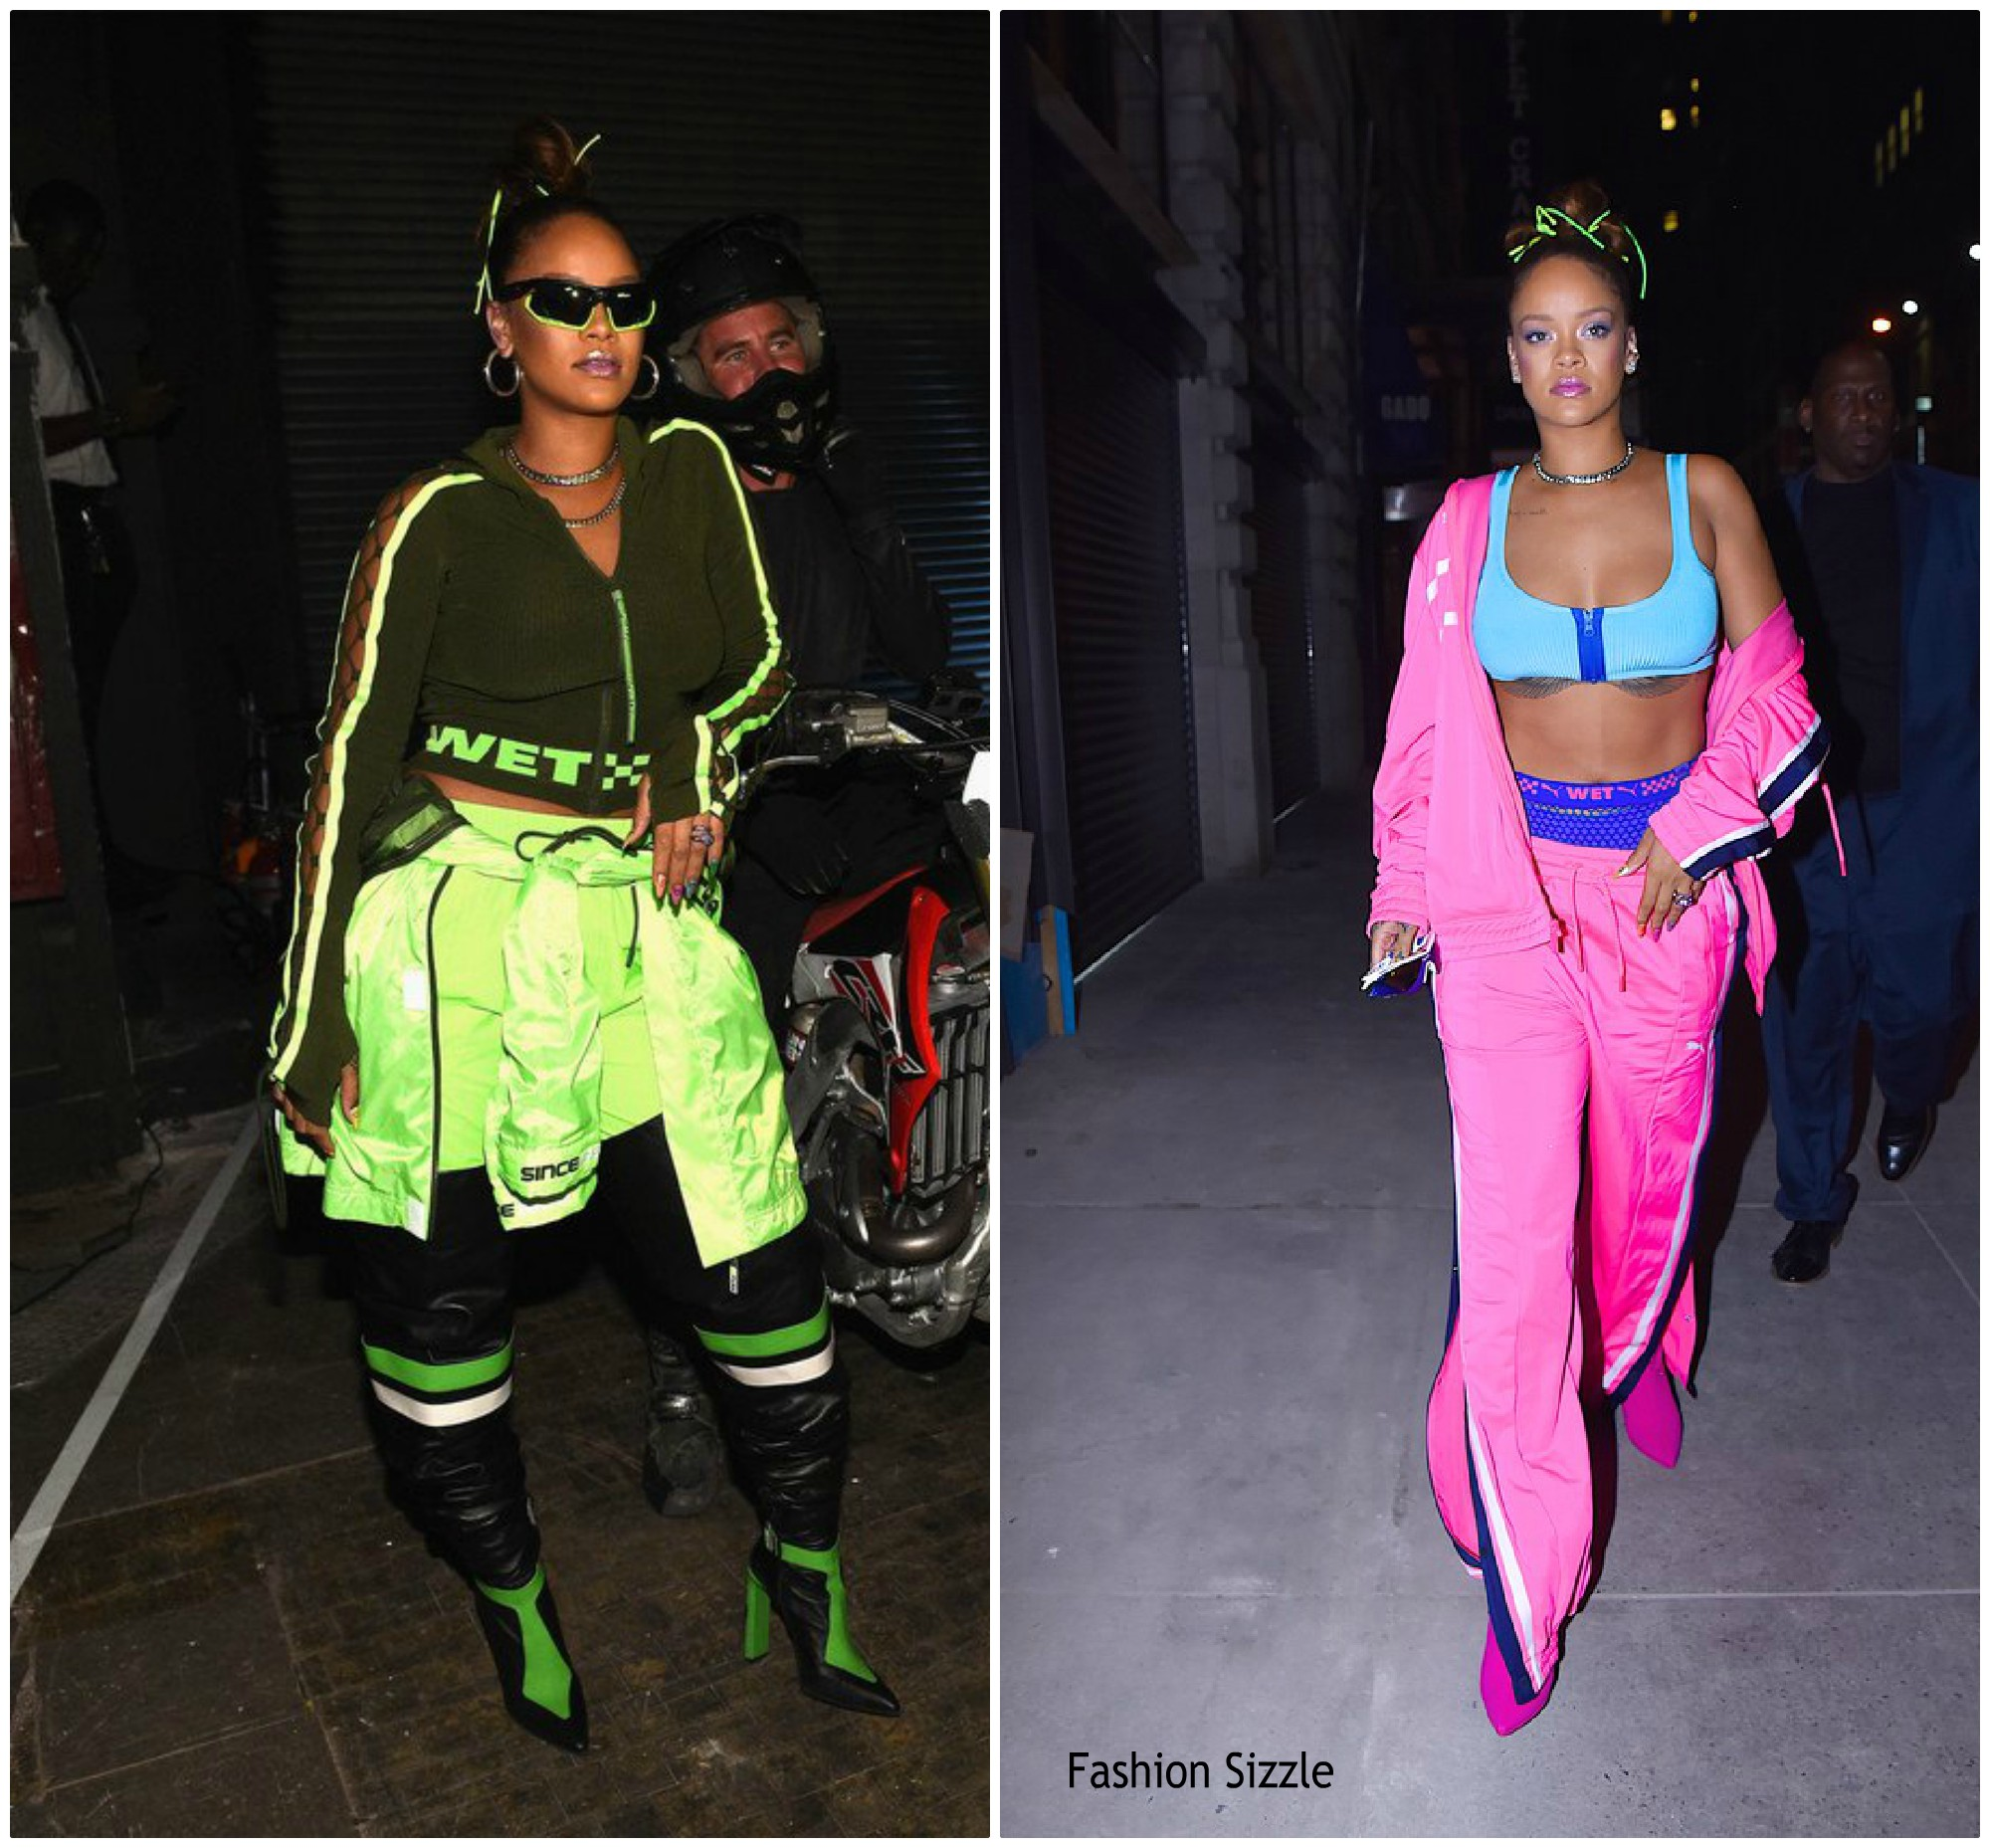 cheaper sale strong packing later Rihanna In Fenty x Puma - Celebrate S/S 2018 New York ...